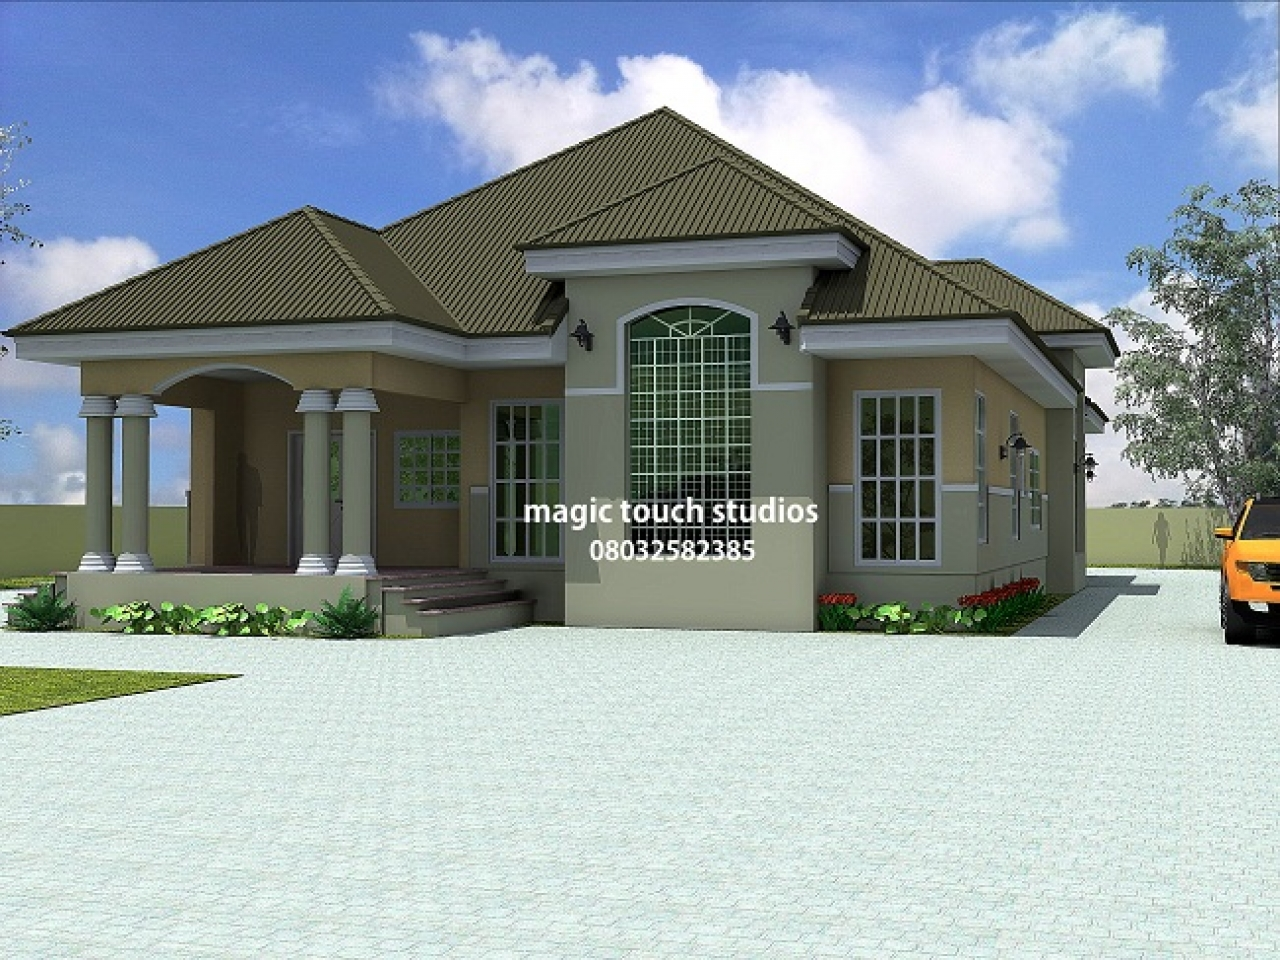 5 Bedroom Bungalow Floor Plan 5 Bedroom Bungalow House ...